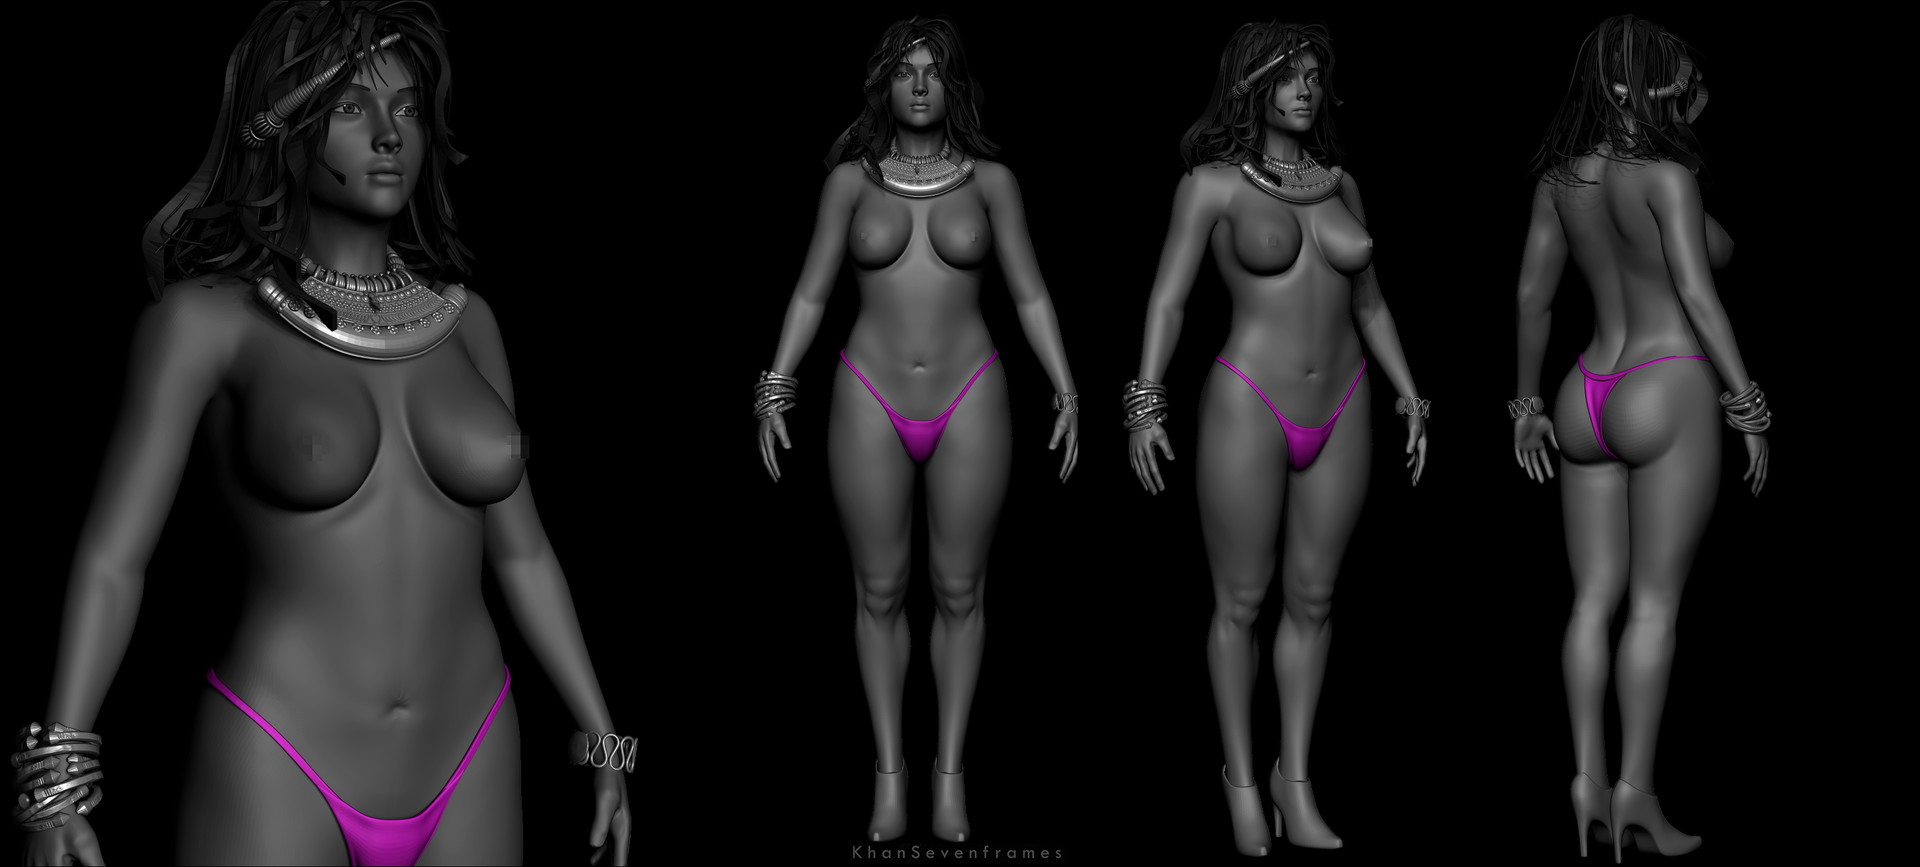 ArtStation - Anatomy -Female Practice, Khan SevenFrames